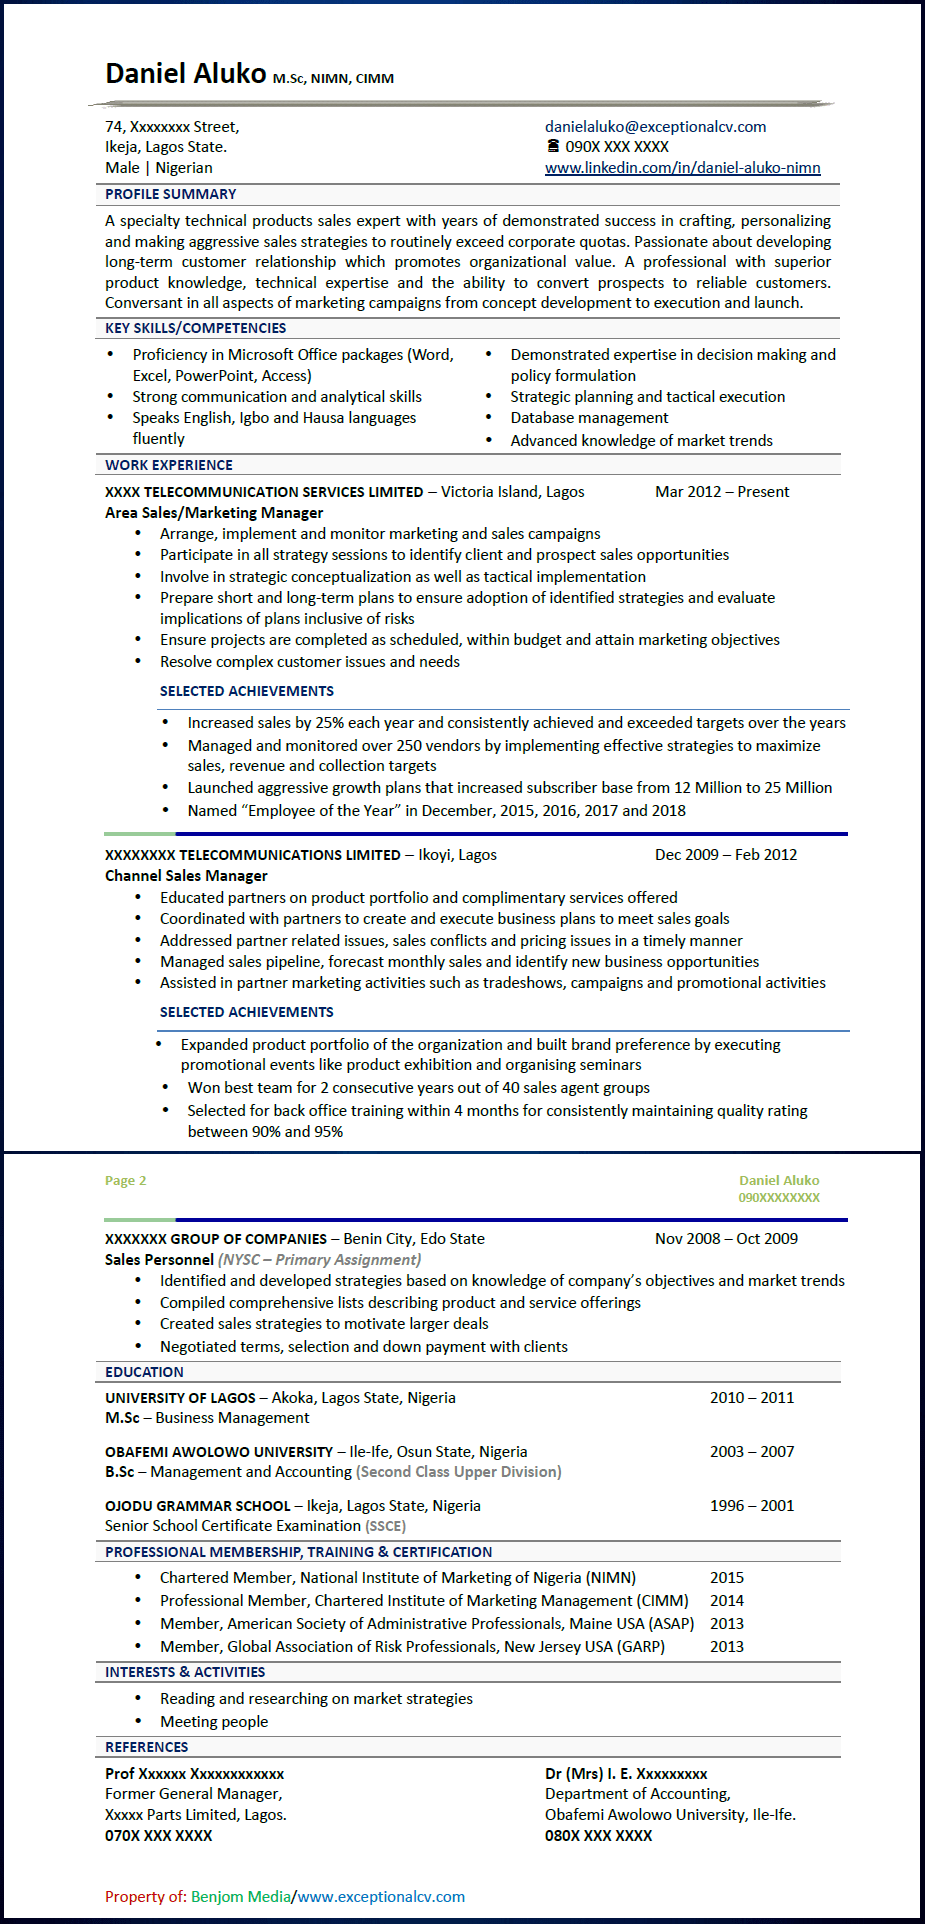 Exceptional CV Sample